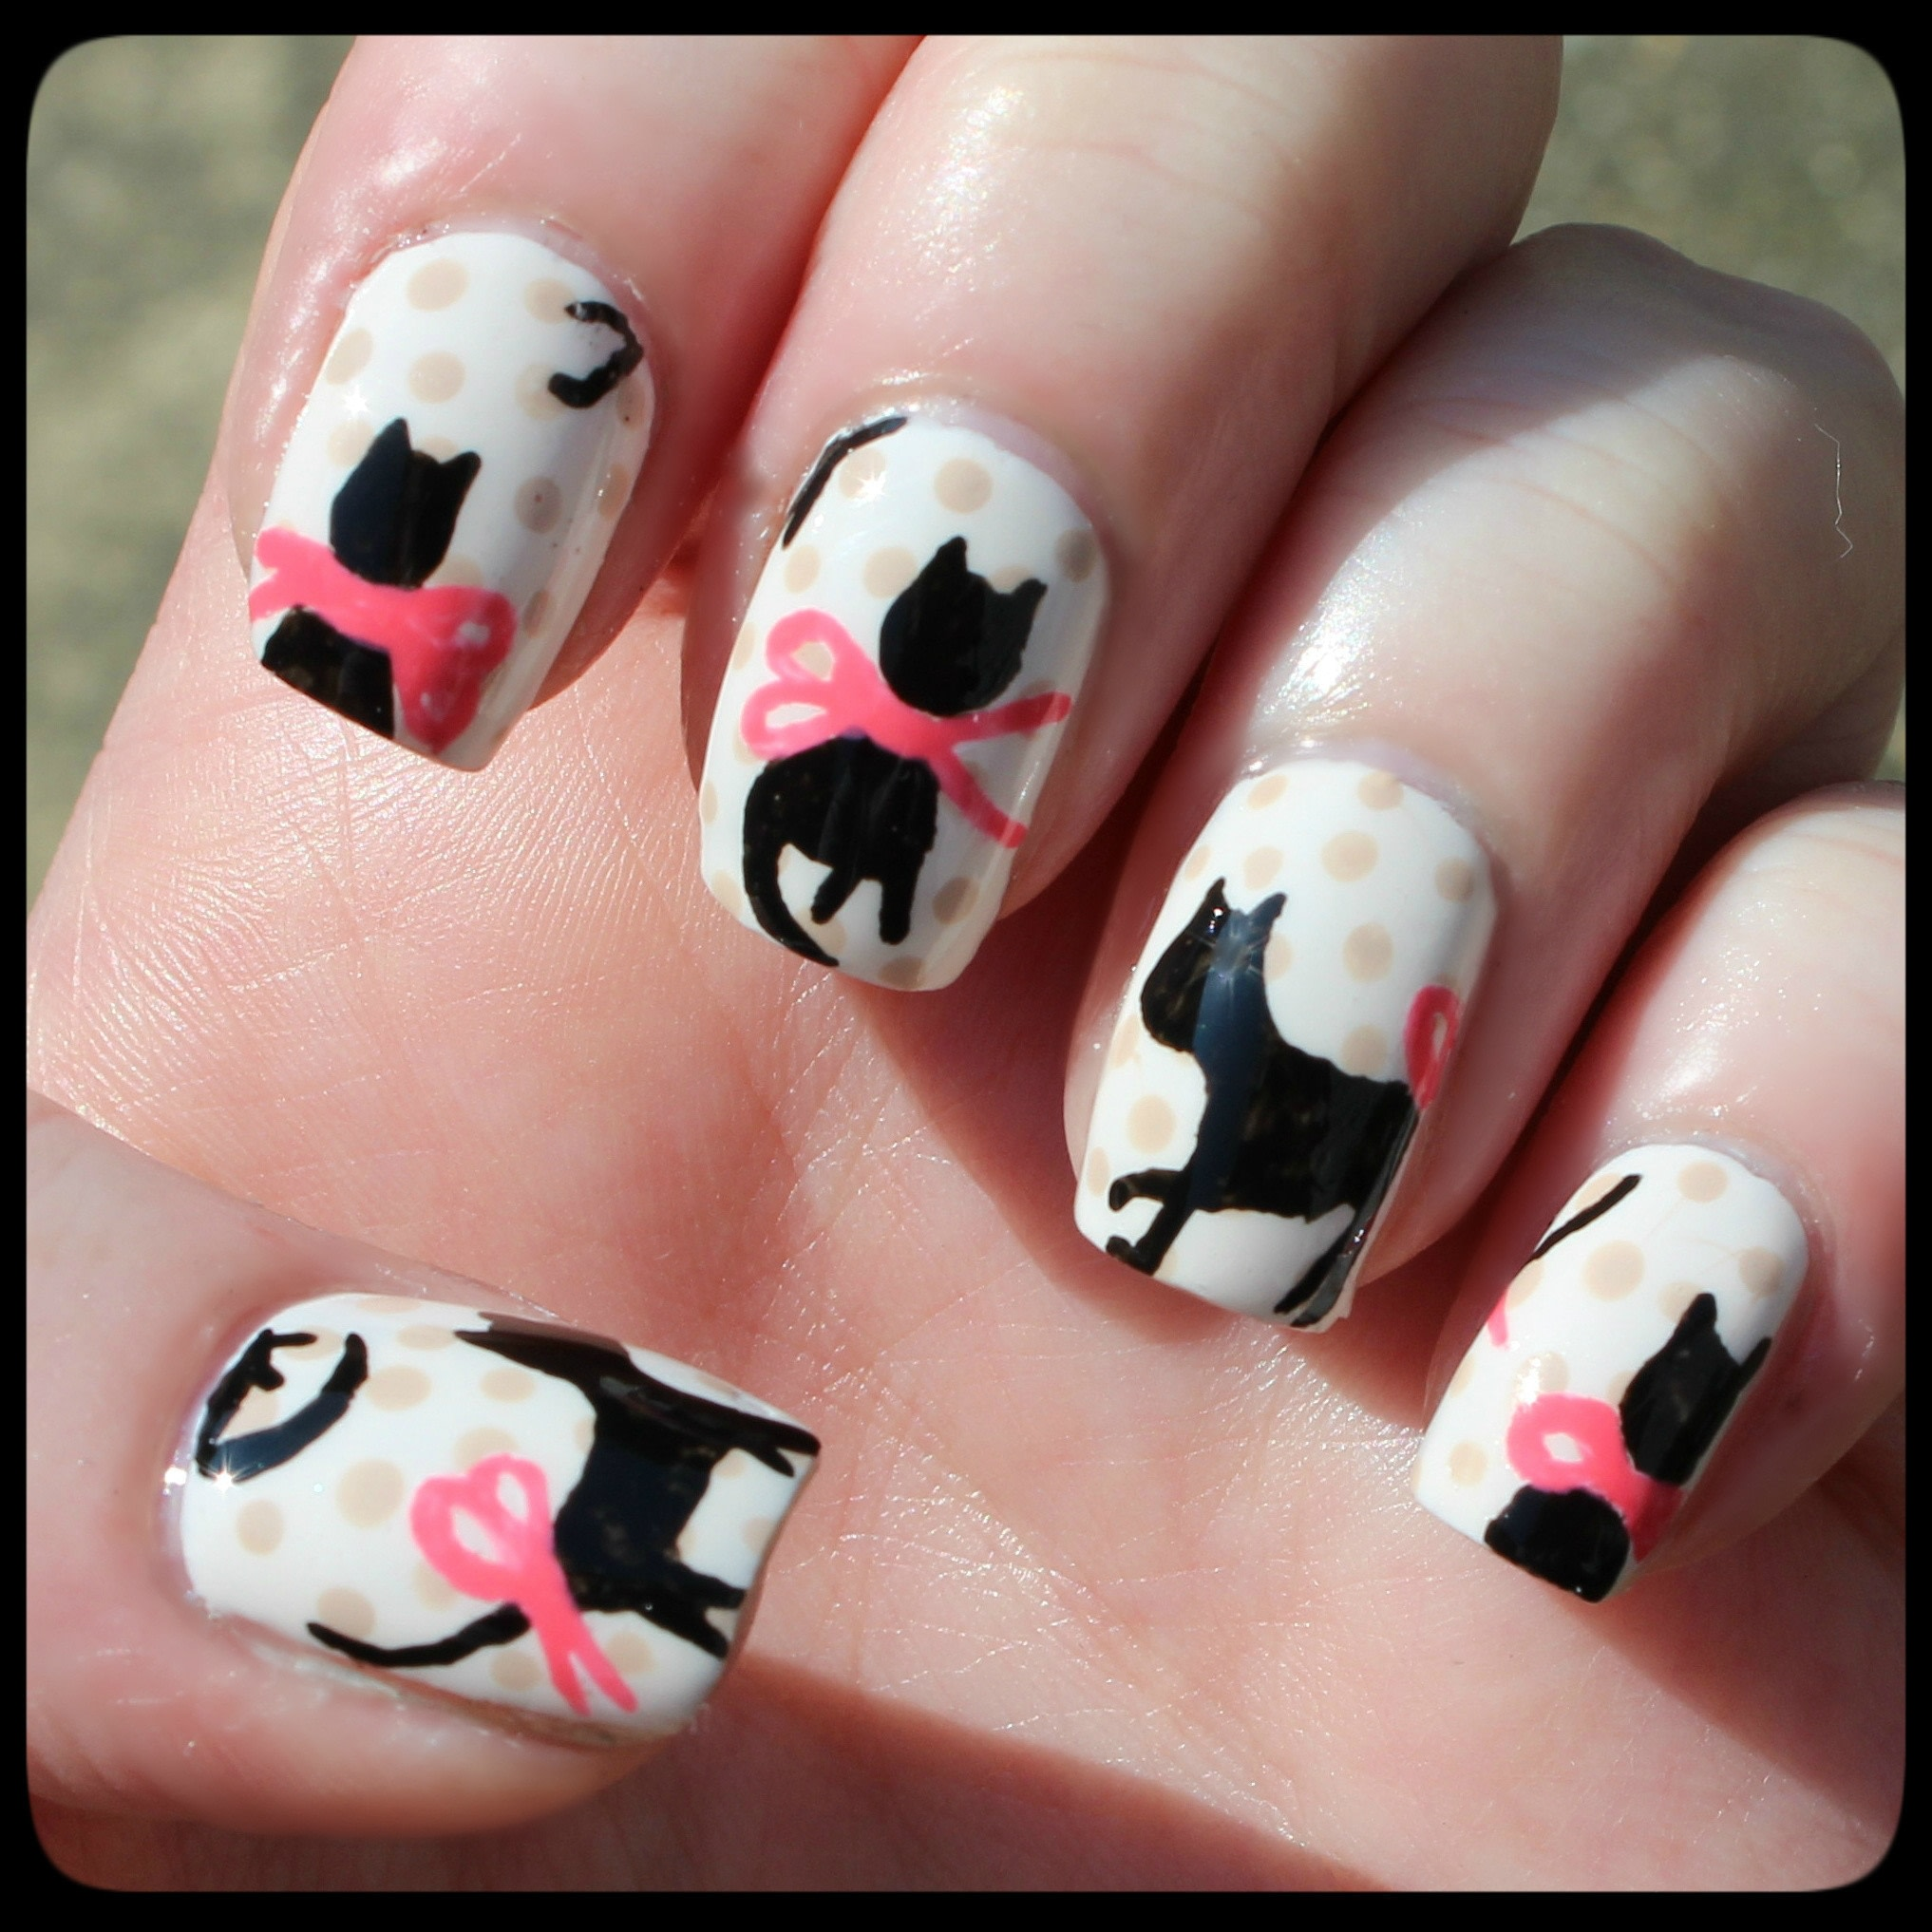 Animal Nail Art: Cat Blouse Nail Art · How To Paint An Animal Nail · Beauty